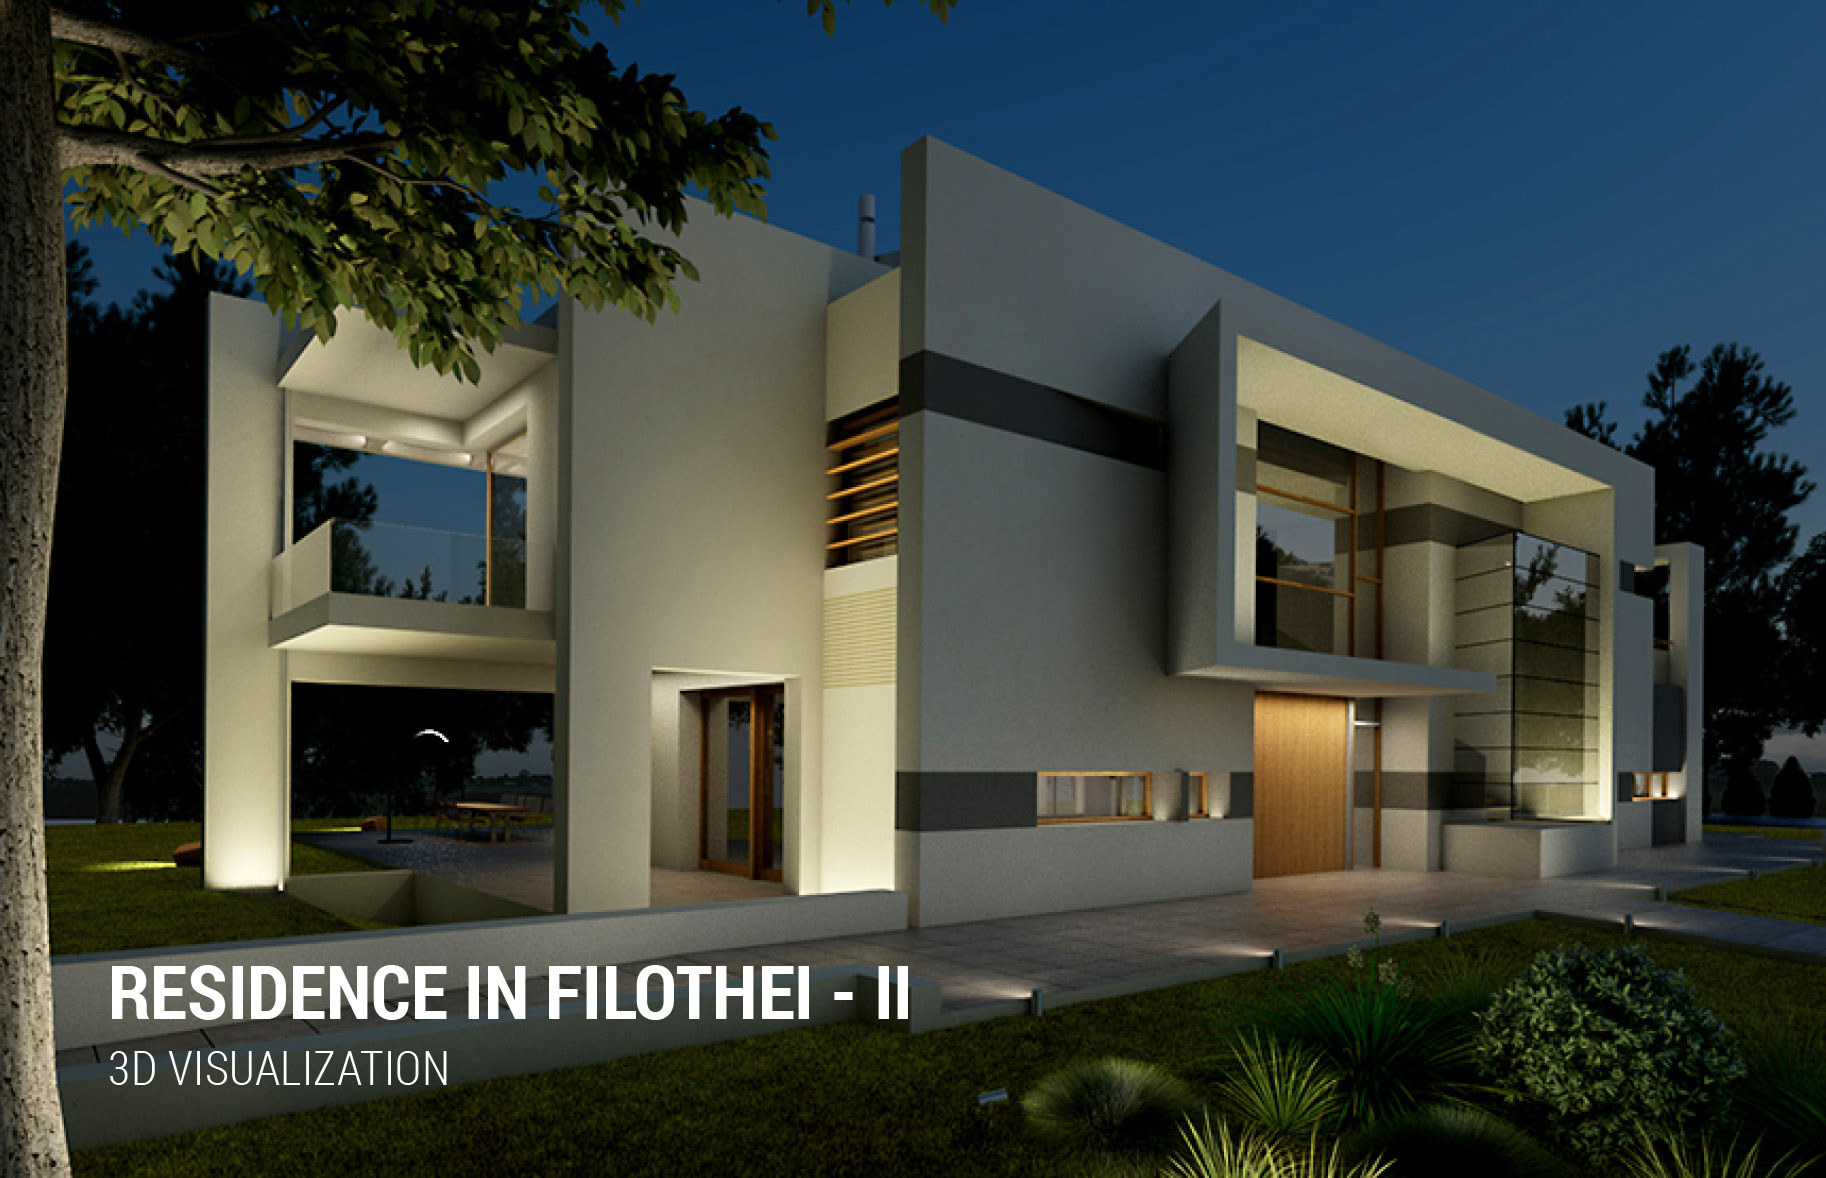 Schema Dimitra Chrona designer, creative director, architectural, 3D visualization, 3D Rendering, branding websites, digital, graphic design, interior design, real estate, luxury property, staging, museum, virtual, art, brochures, exhibitions, logotype, logo, Canada Quebec Montreal Athens Greece schema design filothei residence ii large.jpg